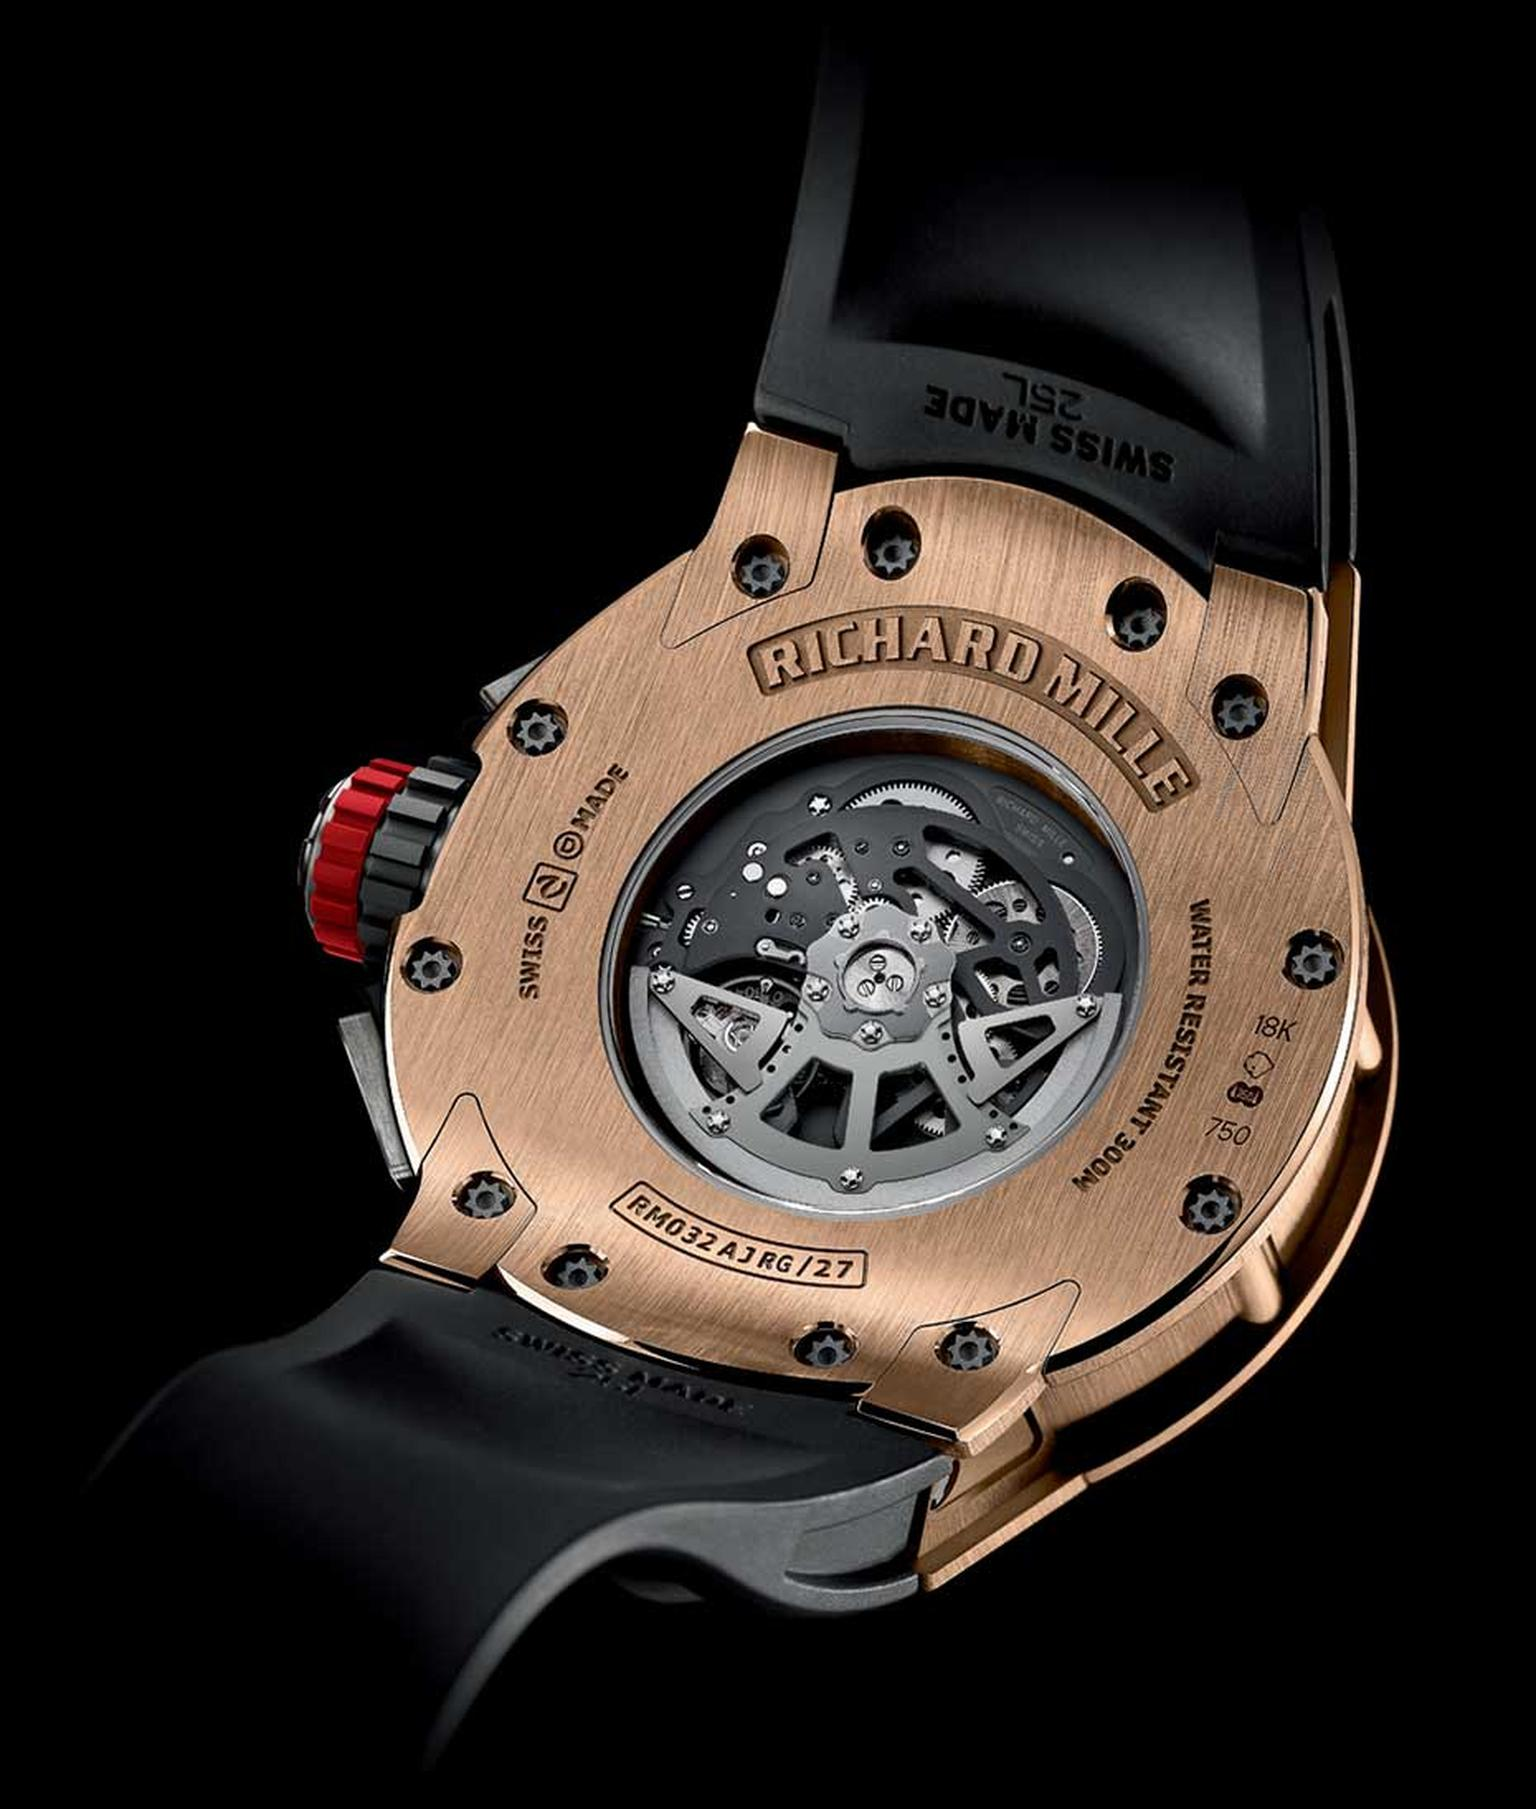 The reverse of the new Richard Mille RM 032 automatic chronograph diver's watch in red gold